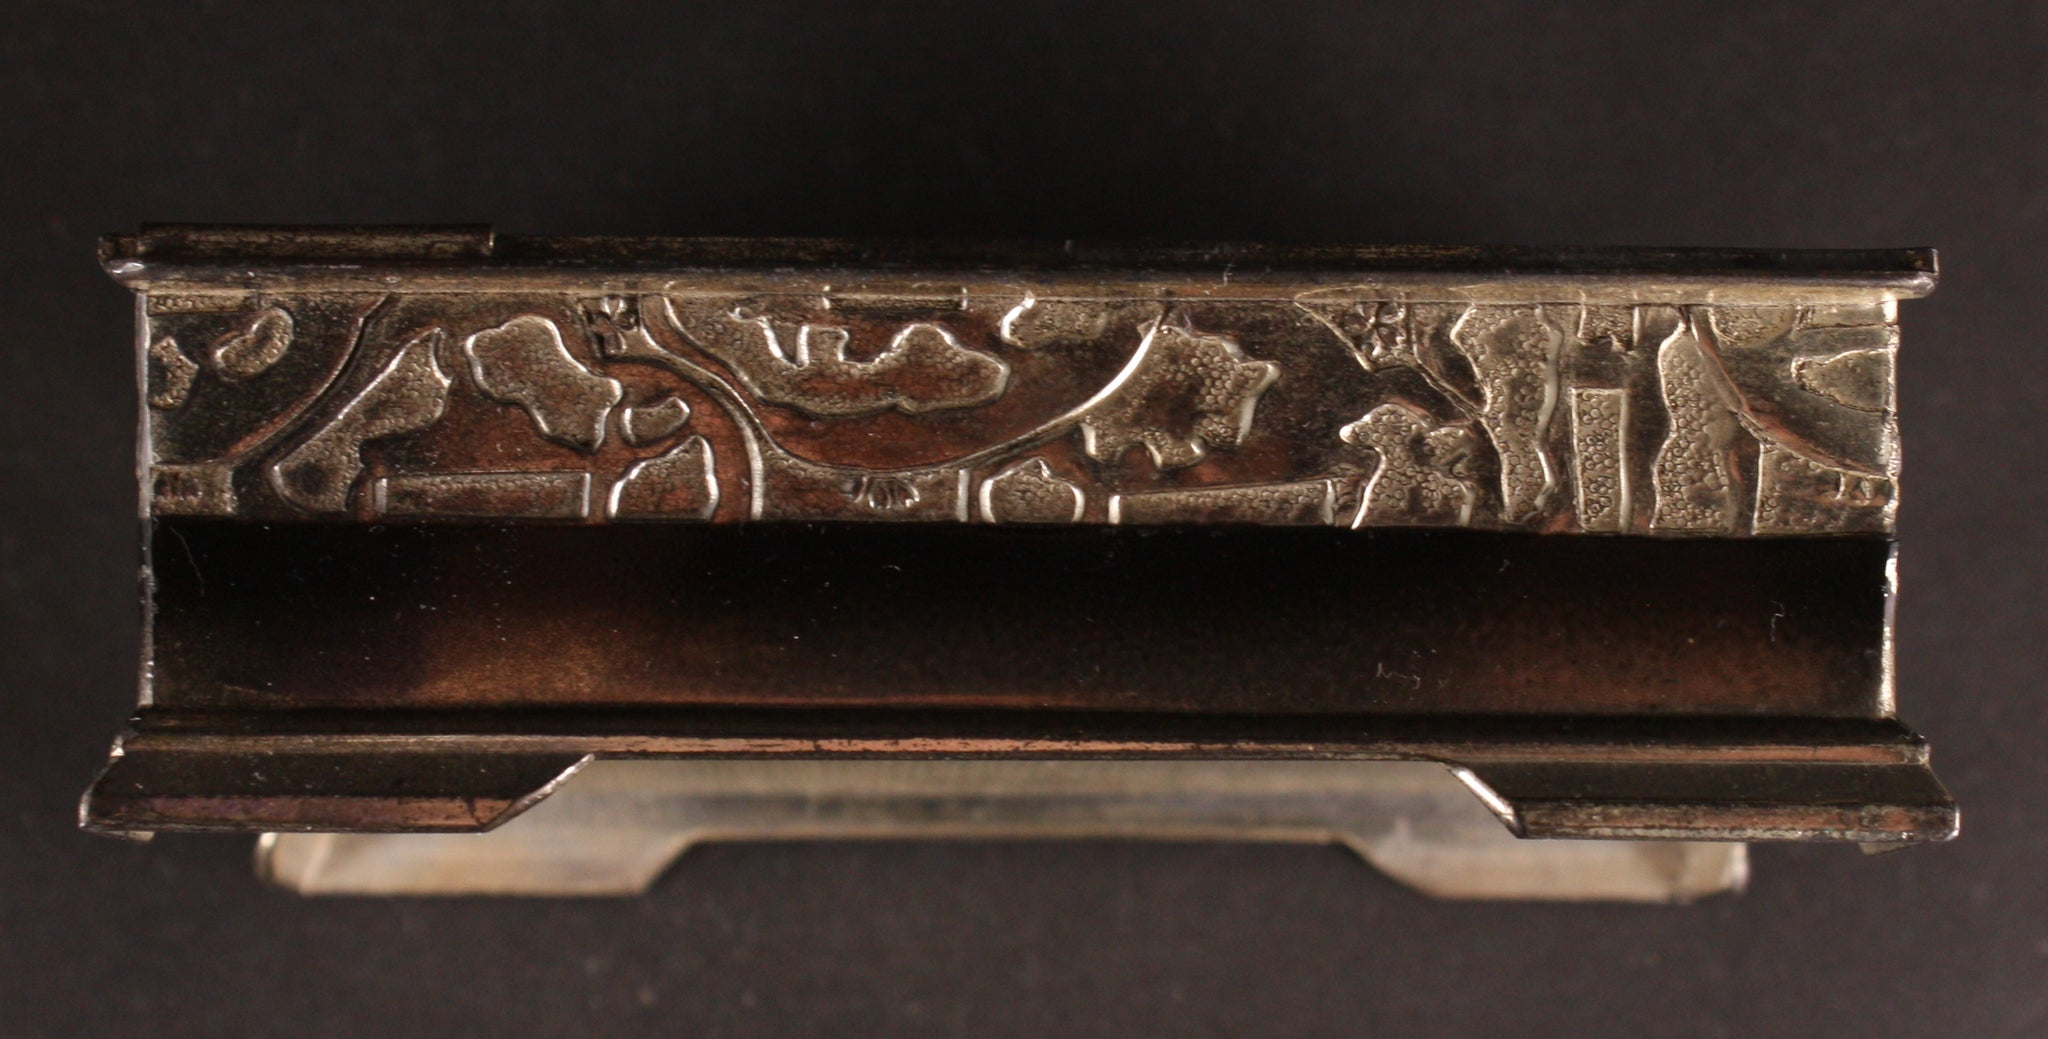 Antique Japanese Military 1937 Cruiser Iwate Foreign Voyage Commemoration Tobacco Box